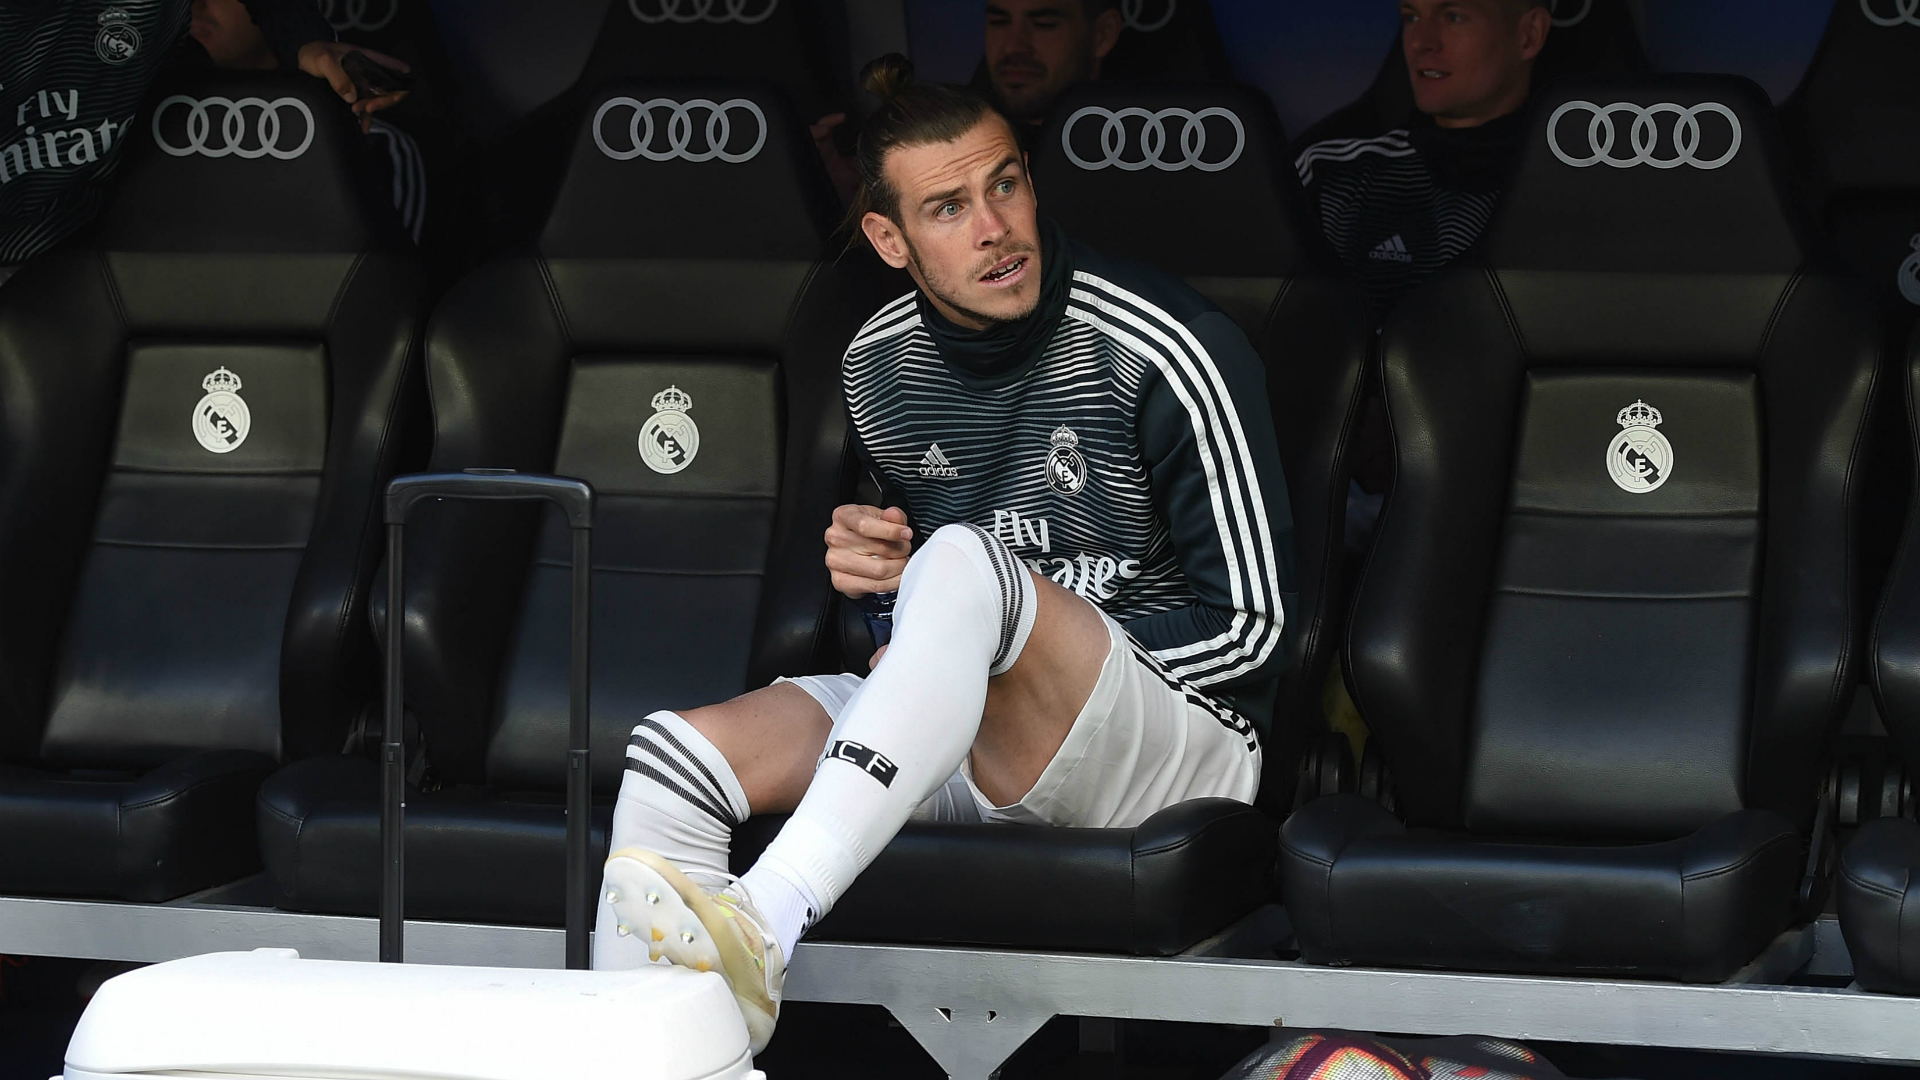 Real Madrid head Zinedine Zidane confirmed the LaLiga giants are looking to offload Gareth Bale in the coming days.